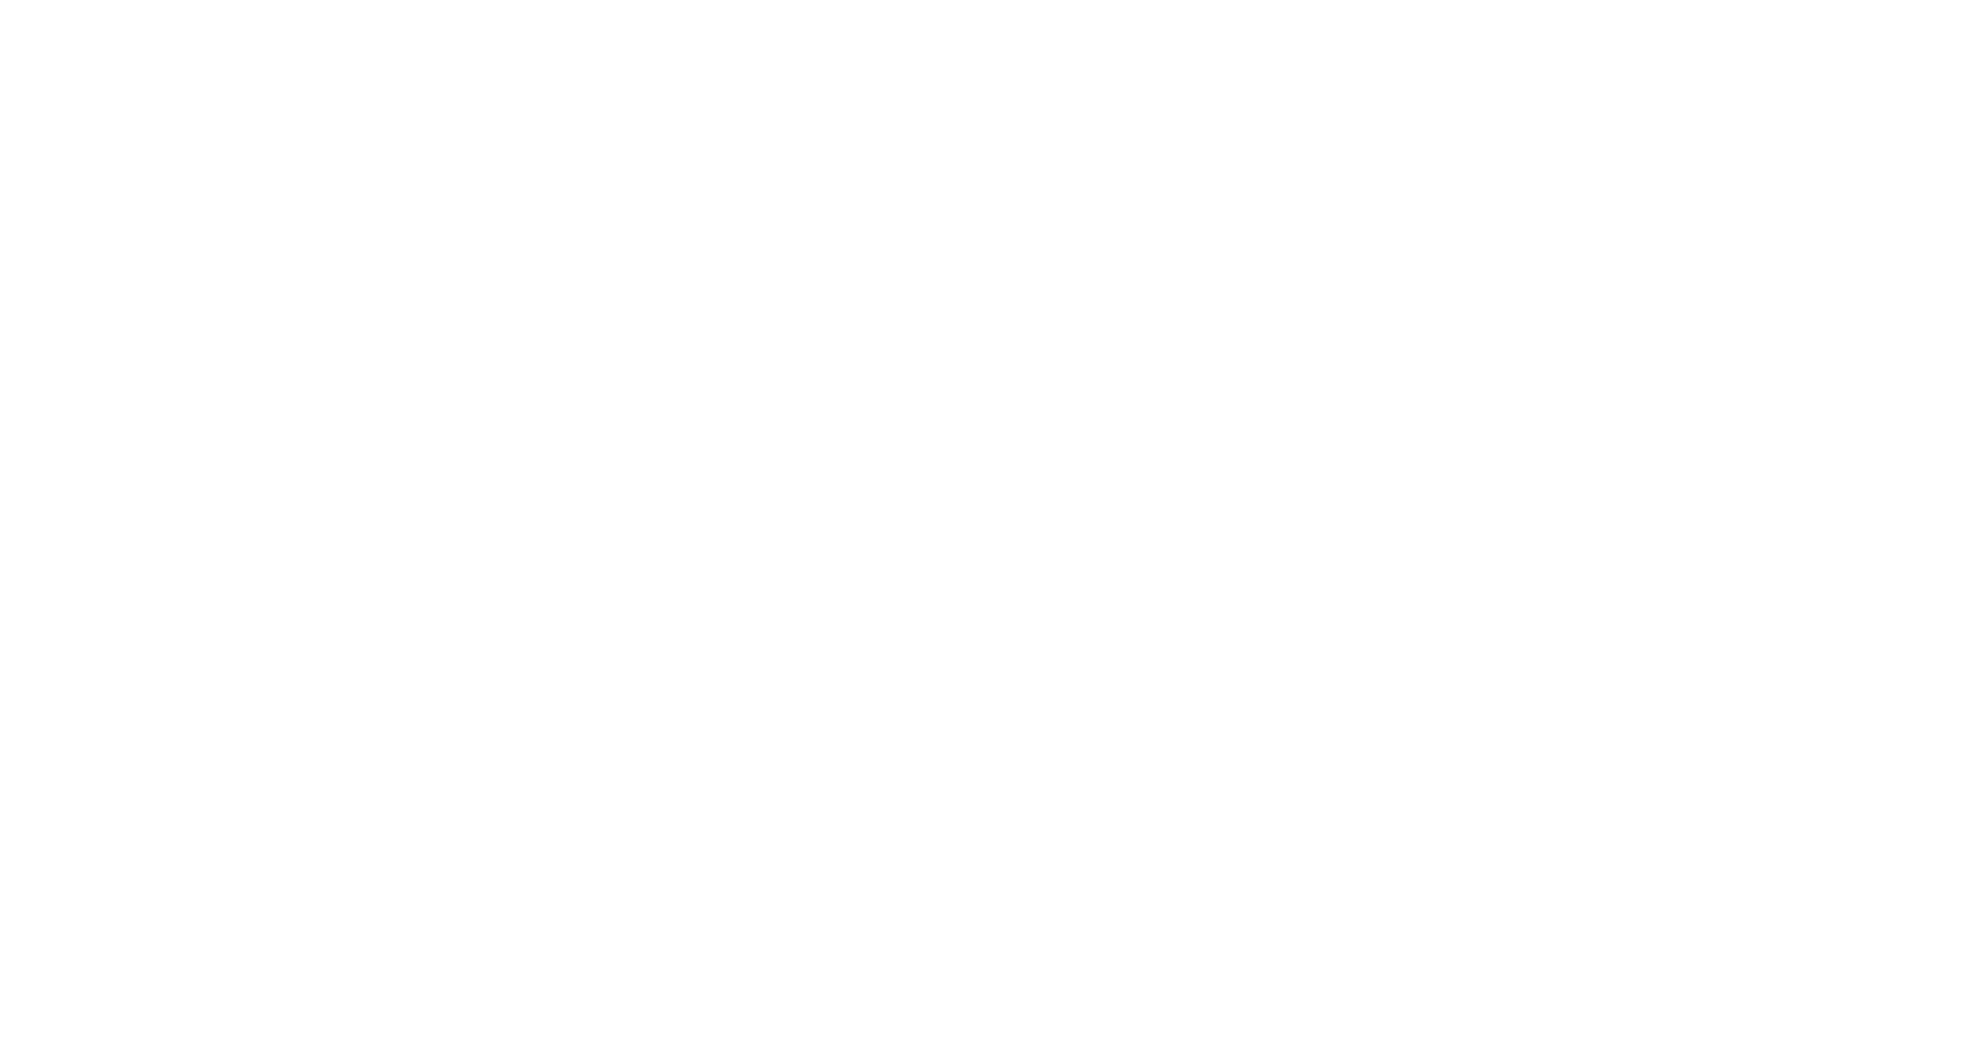 L'Atelier d'Archi | Plugin Studio